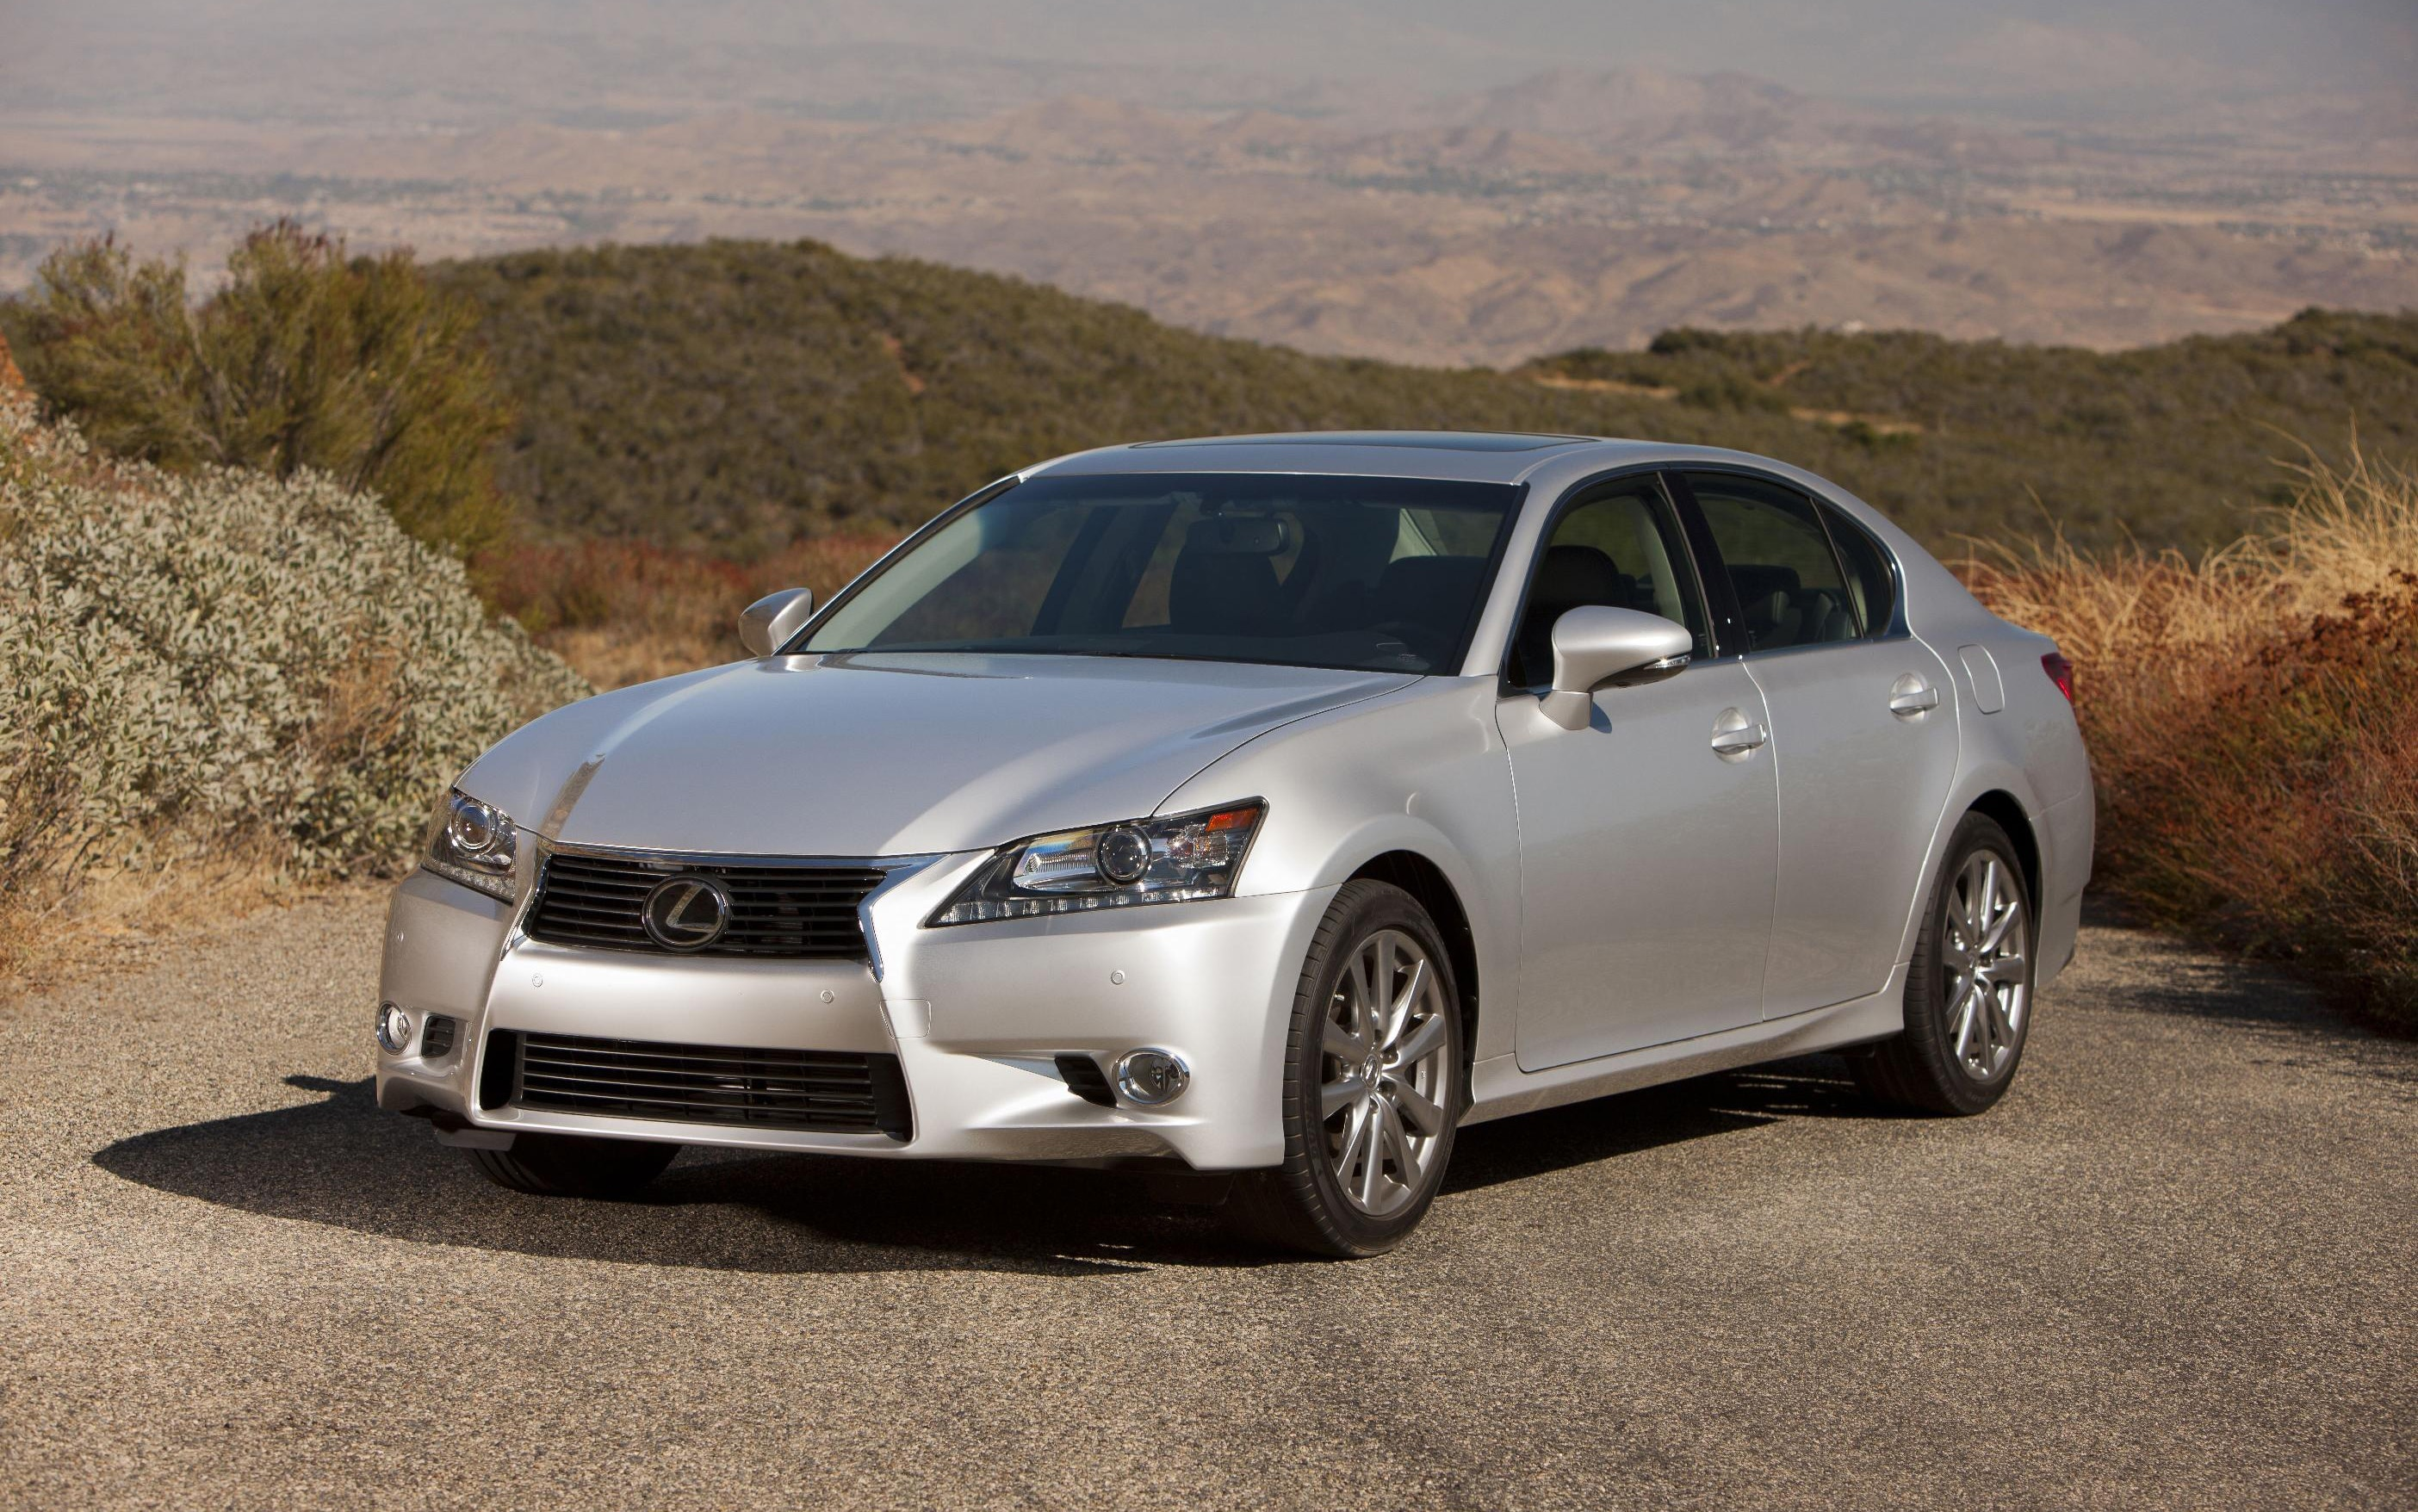 http://st.automobilemag.com/uploads/sites/11/2011/11/2013-Lexus-GS-250-front-three-quarter-stationary.jpg